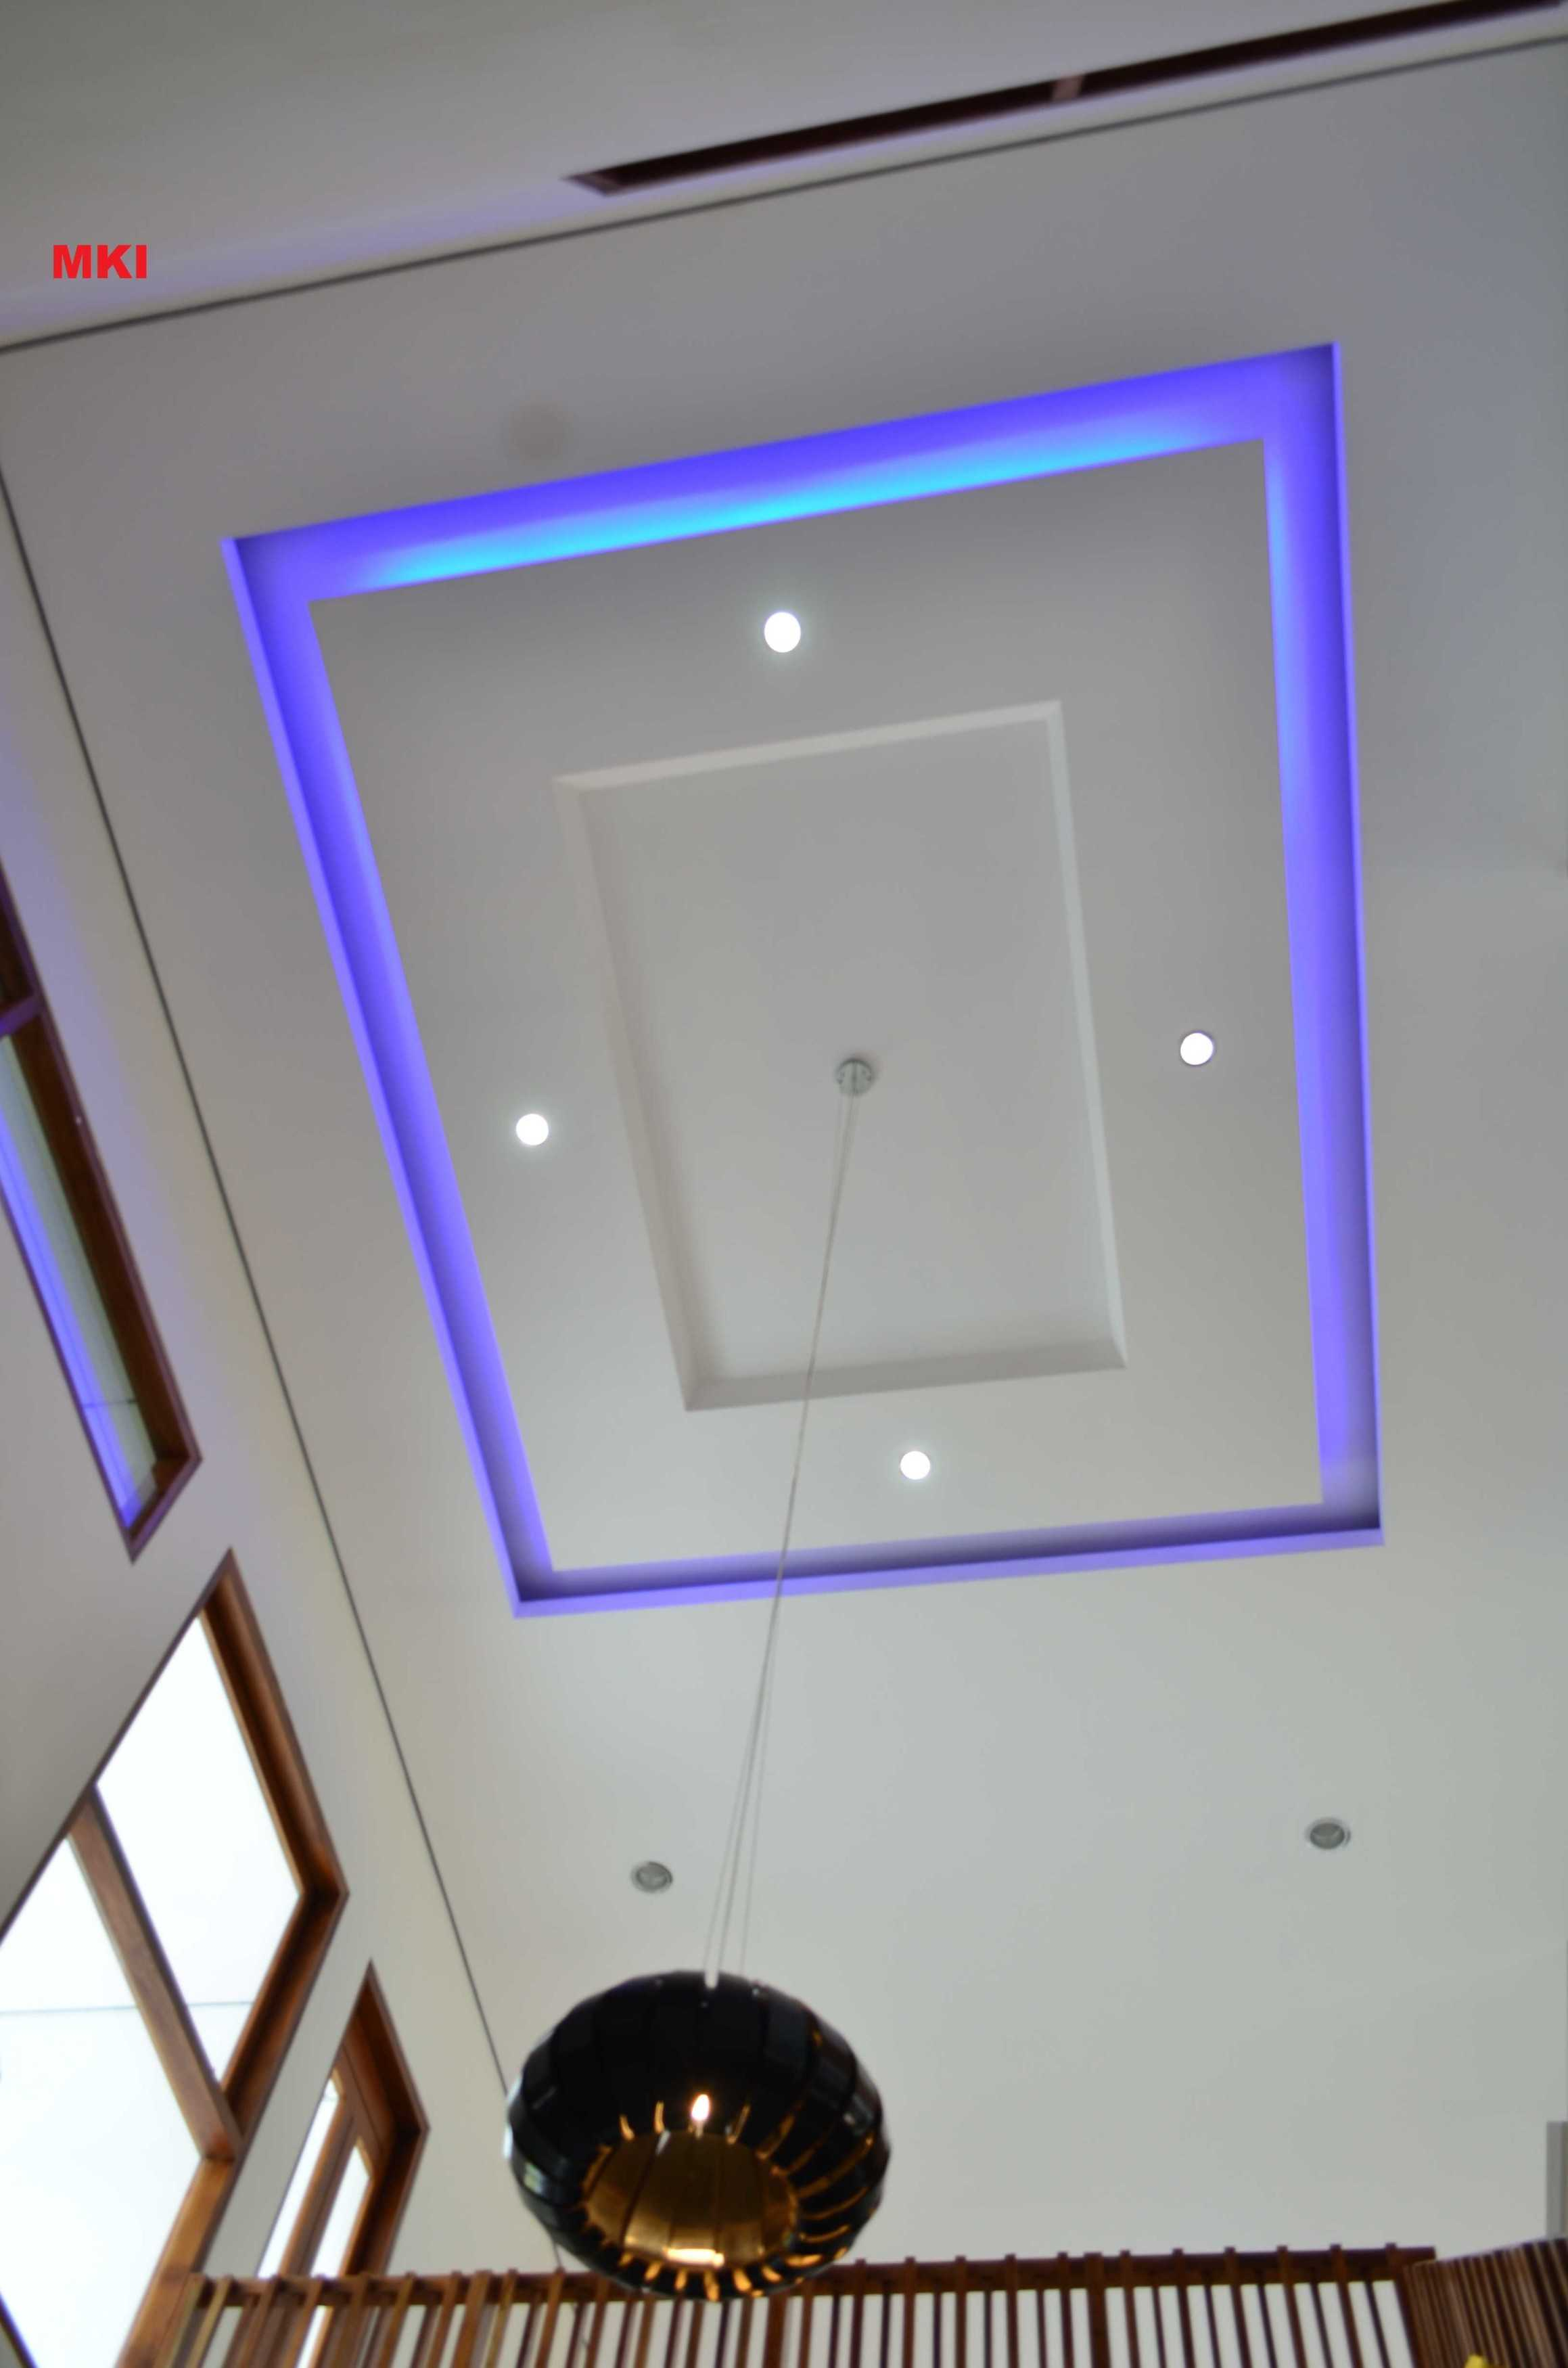 Mki Ts House Cibinong, Bogor, West Java, Indonesia Bogor Ceiling And Void In The Family Room   16870